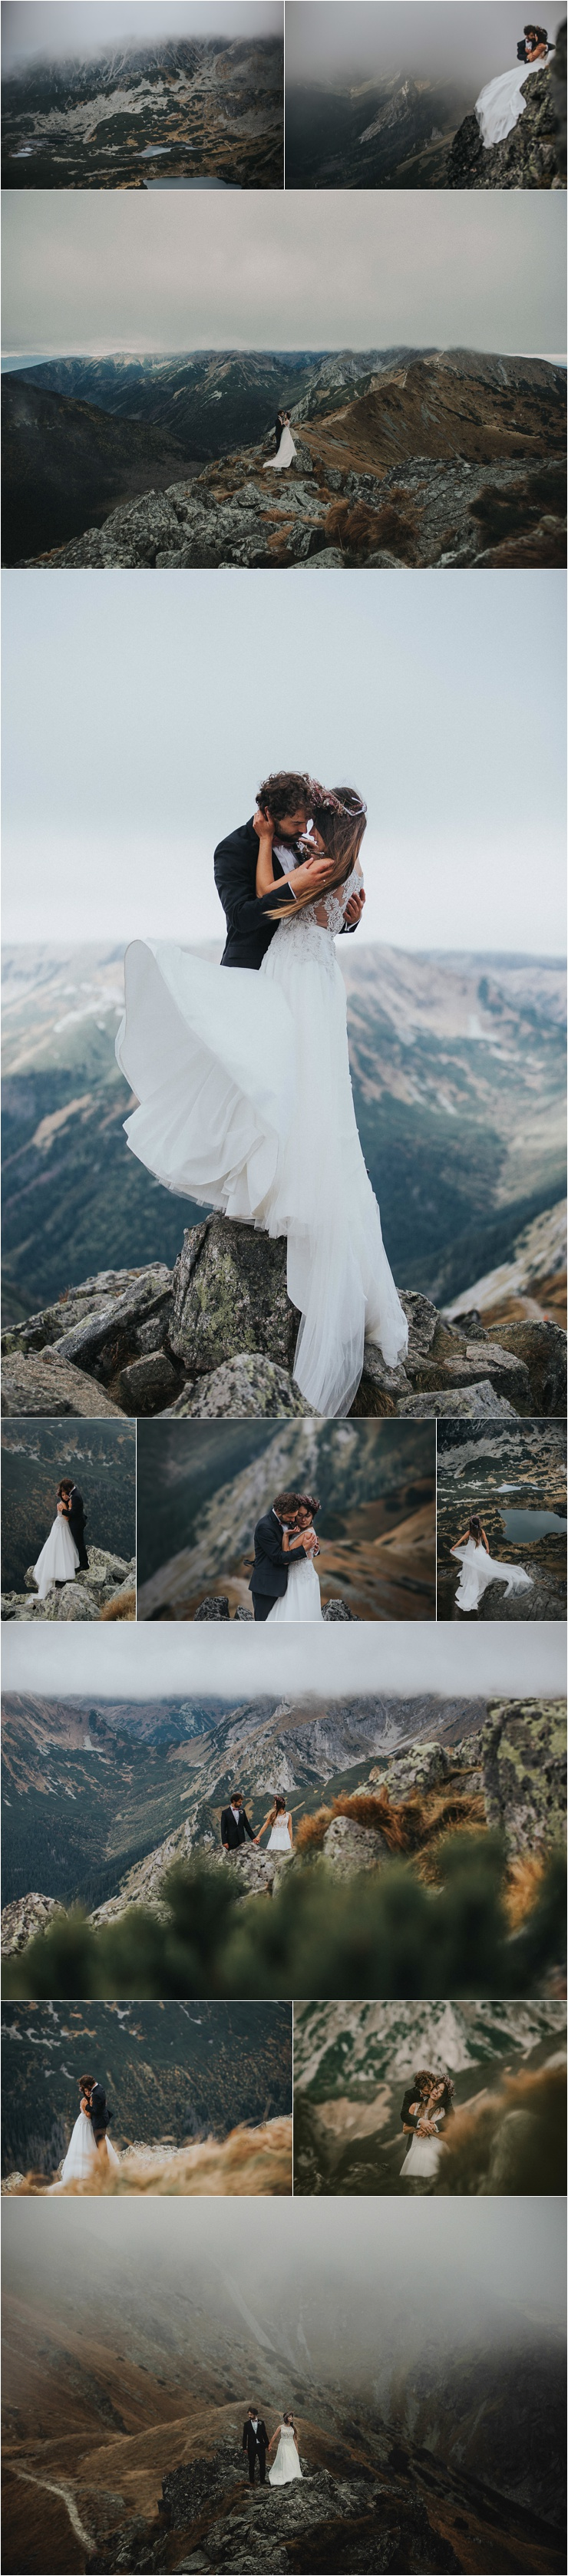 After-Wedding adventure session In The Tatra Mountains In Poland by Fotomagoria